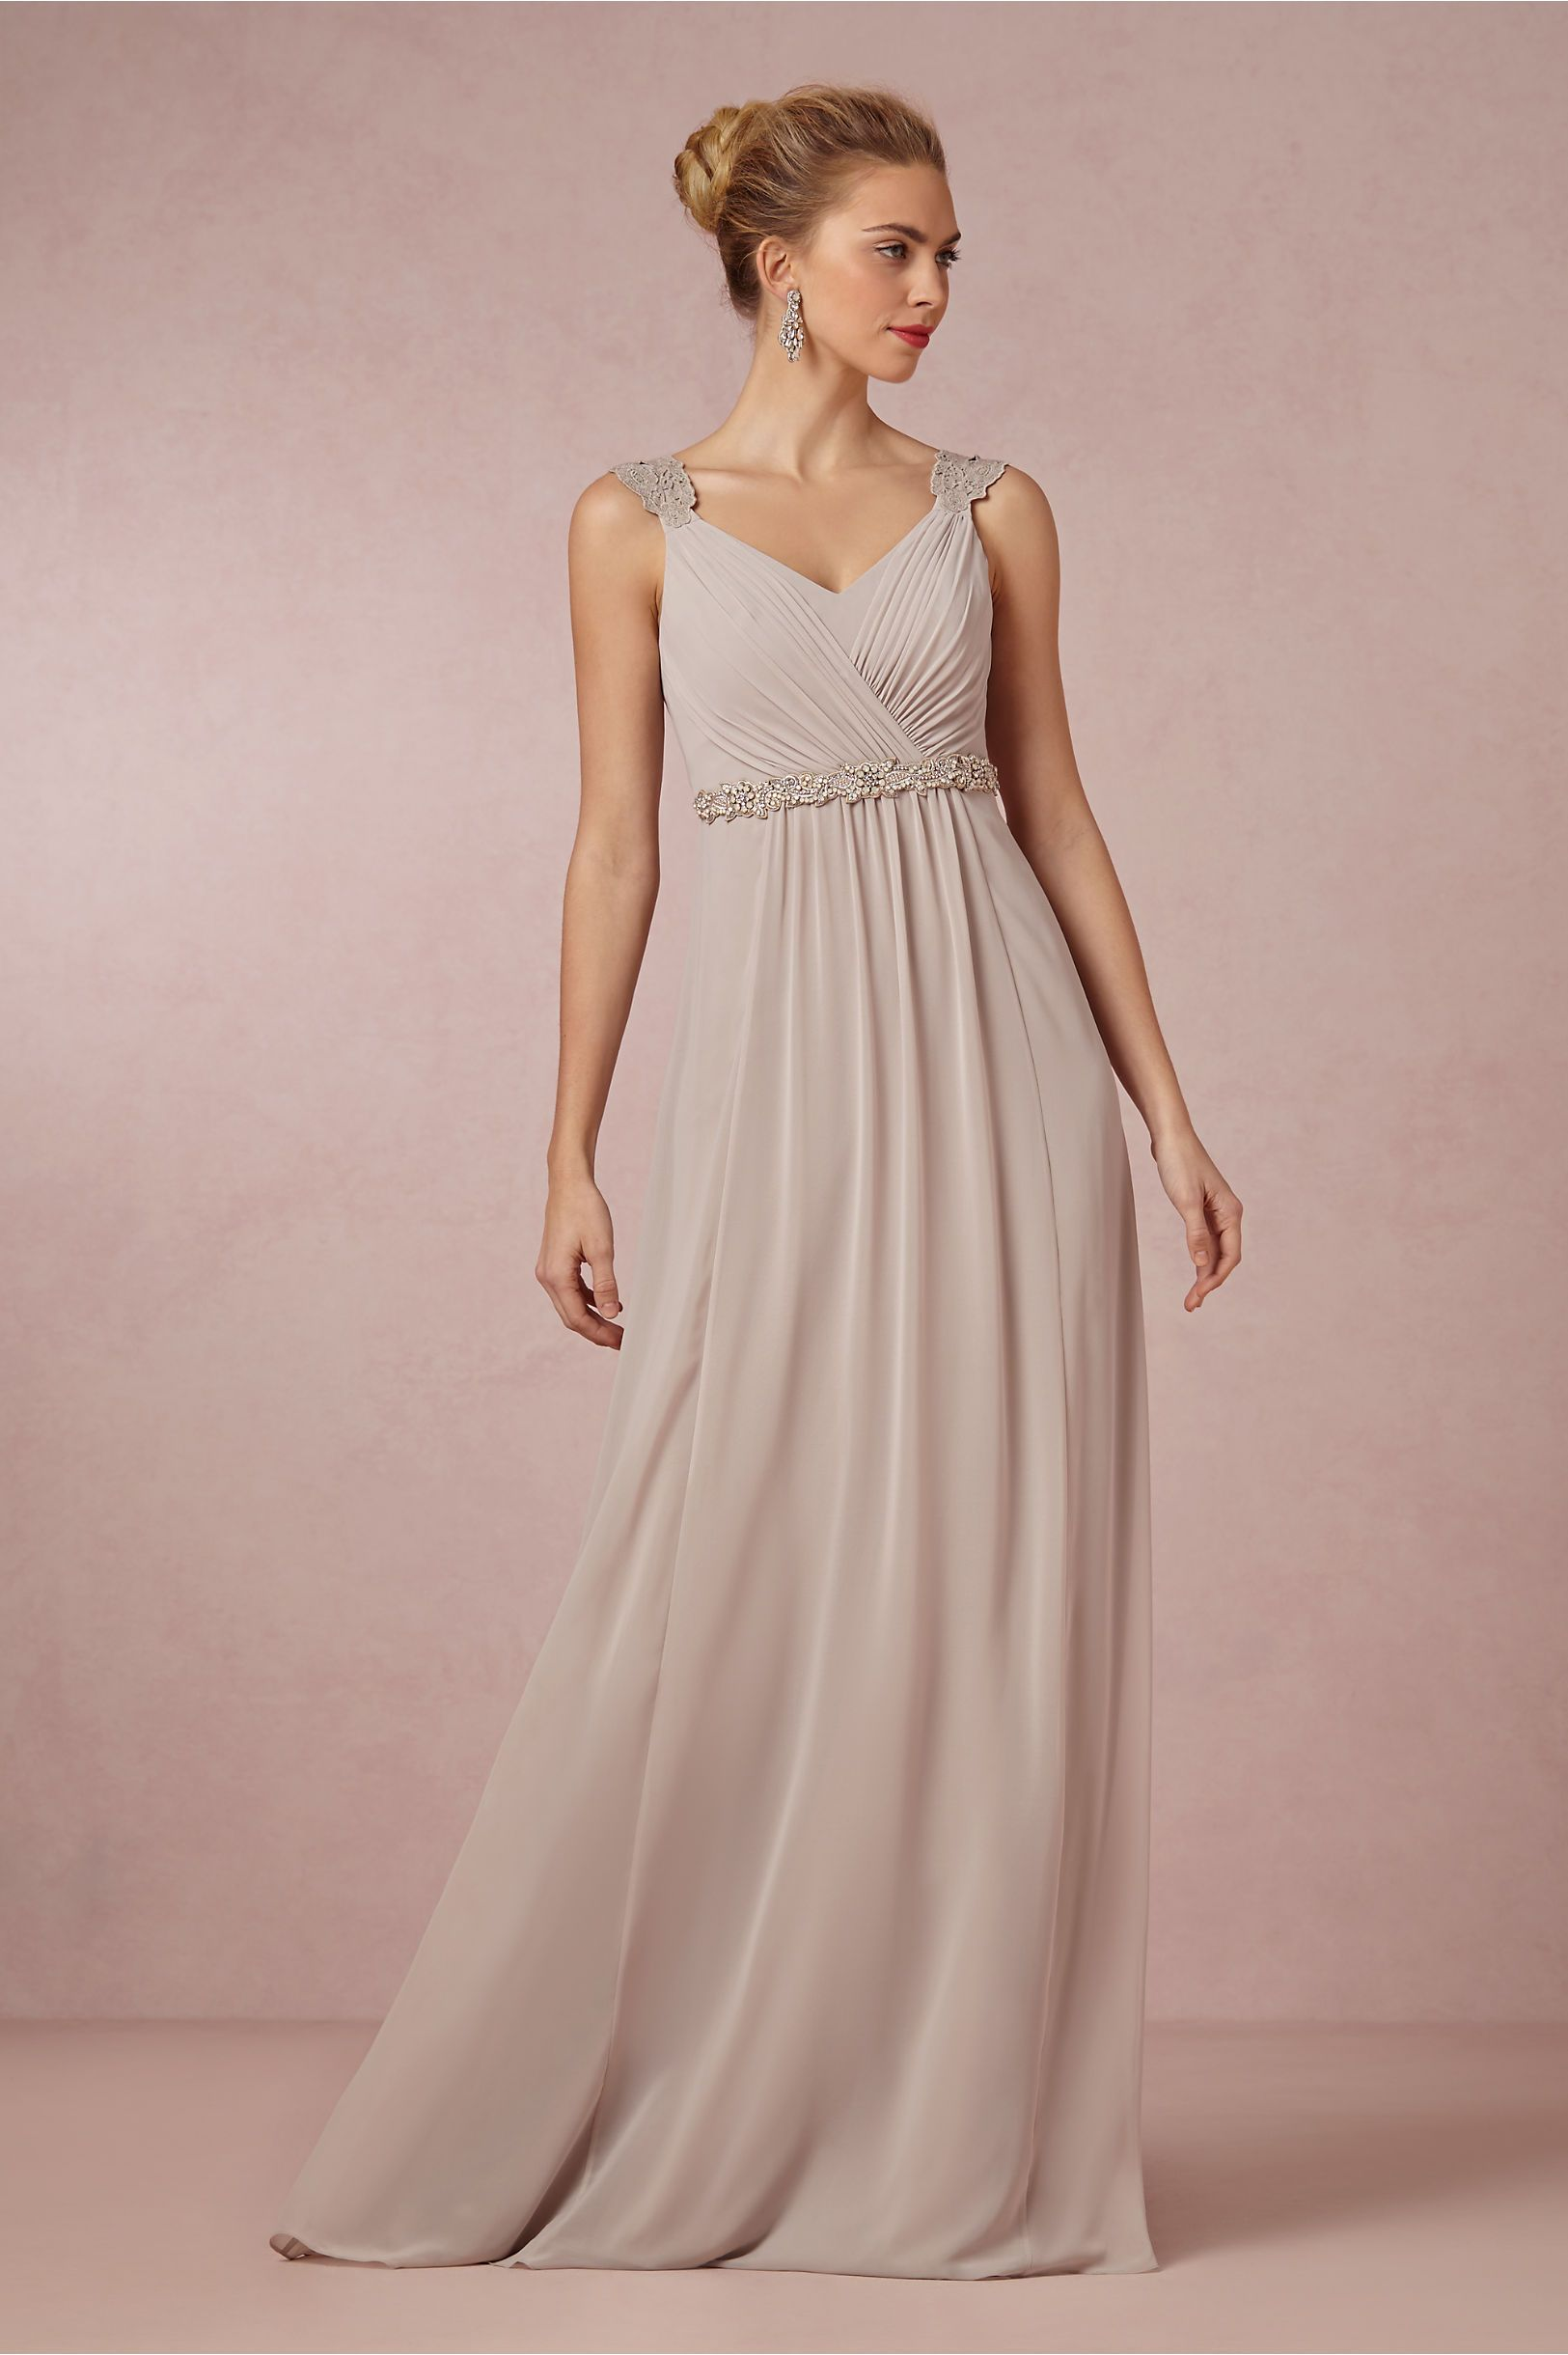 Freya Maxi Dress Unique Bridesmaid Dresses Cheap